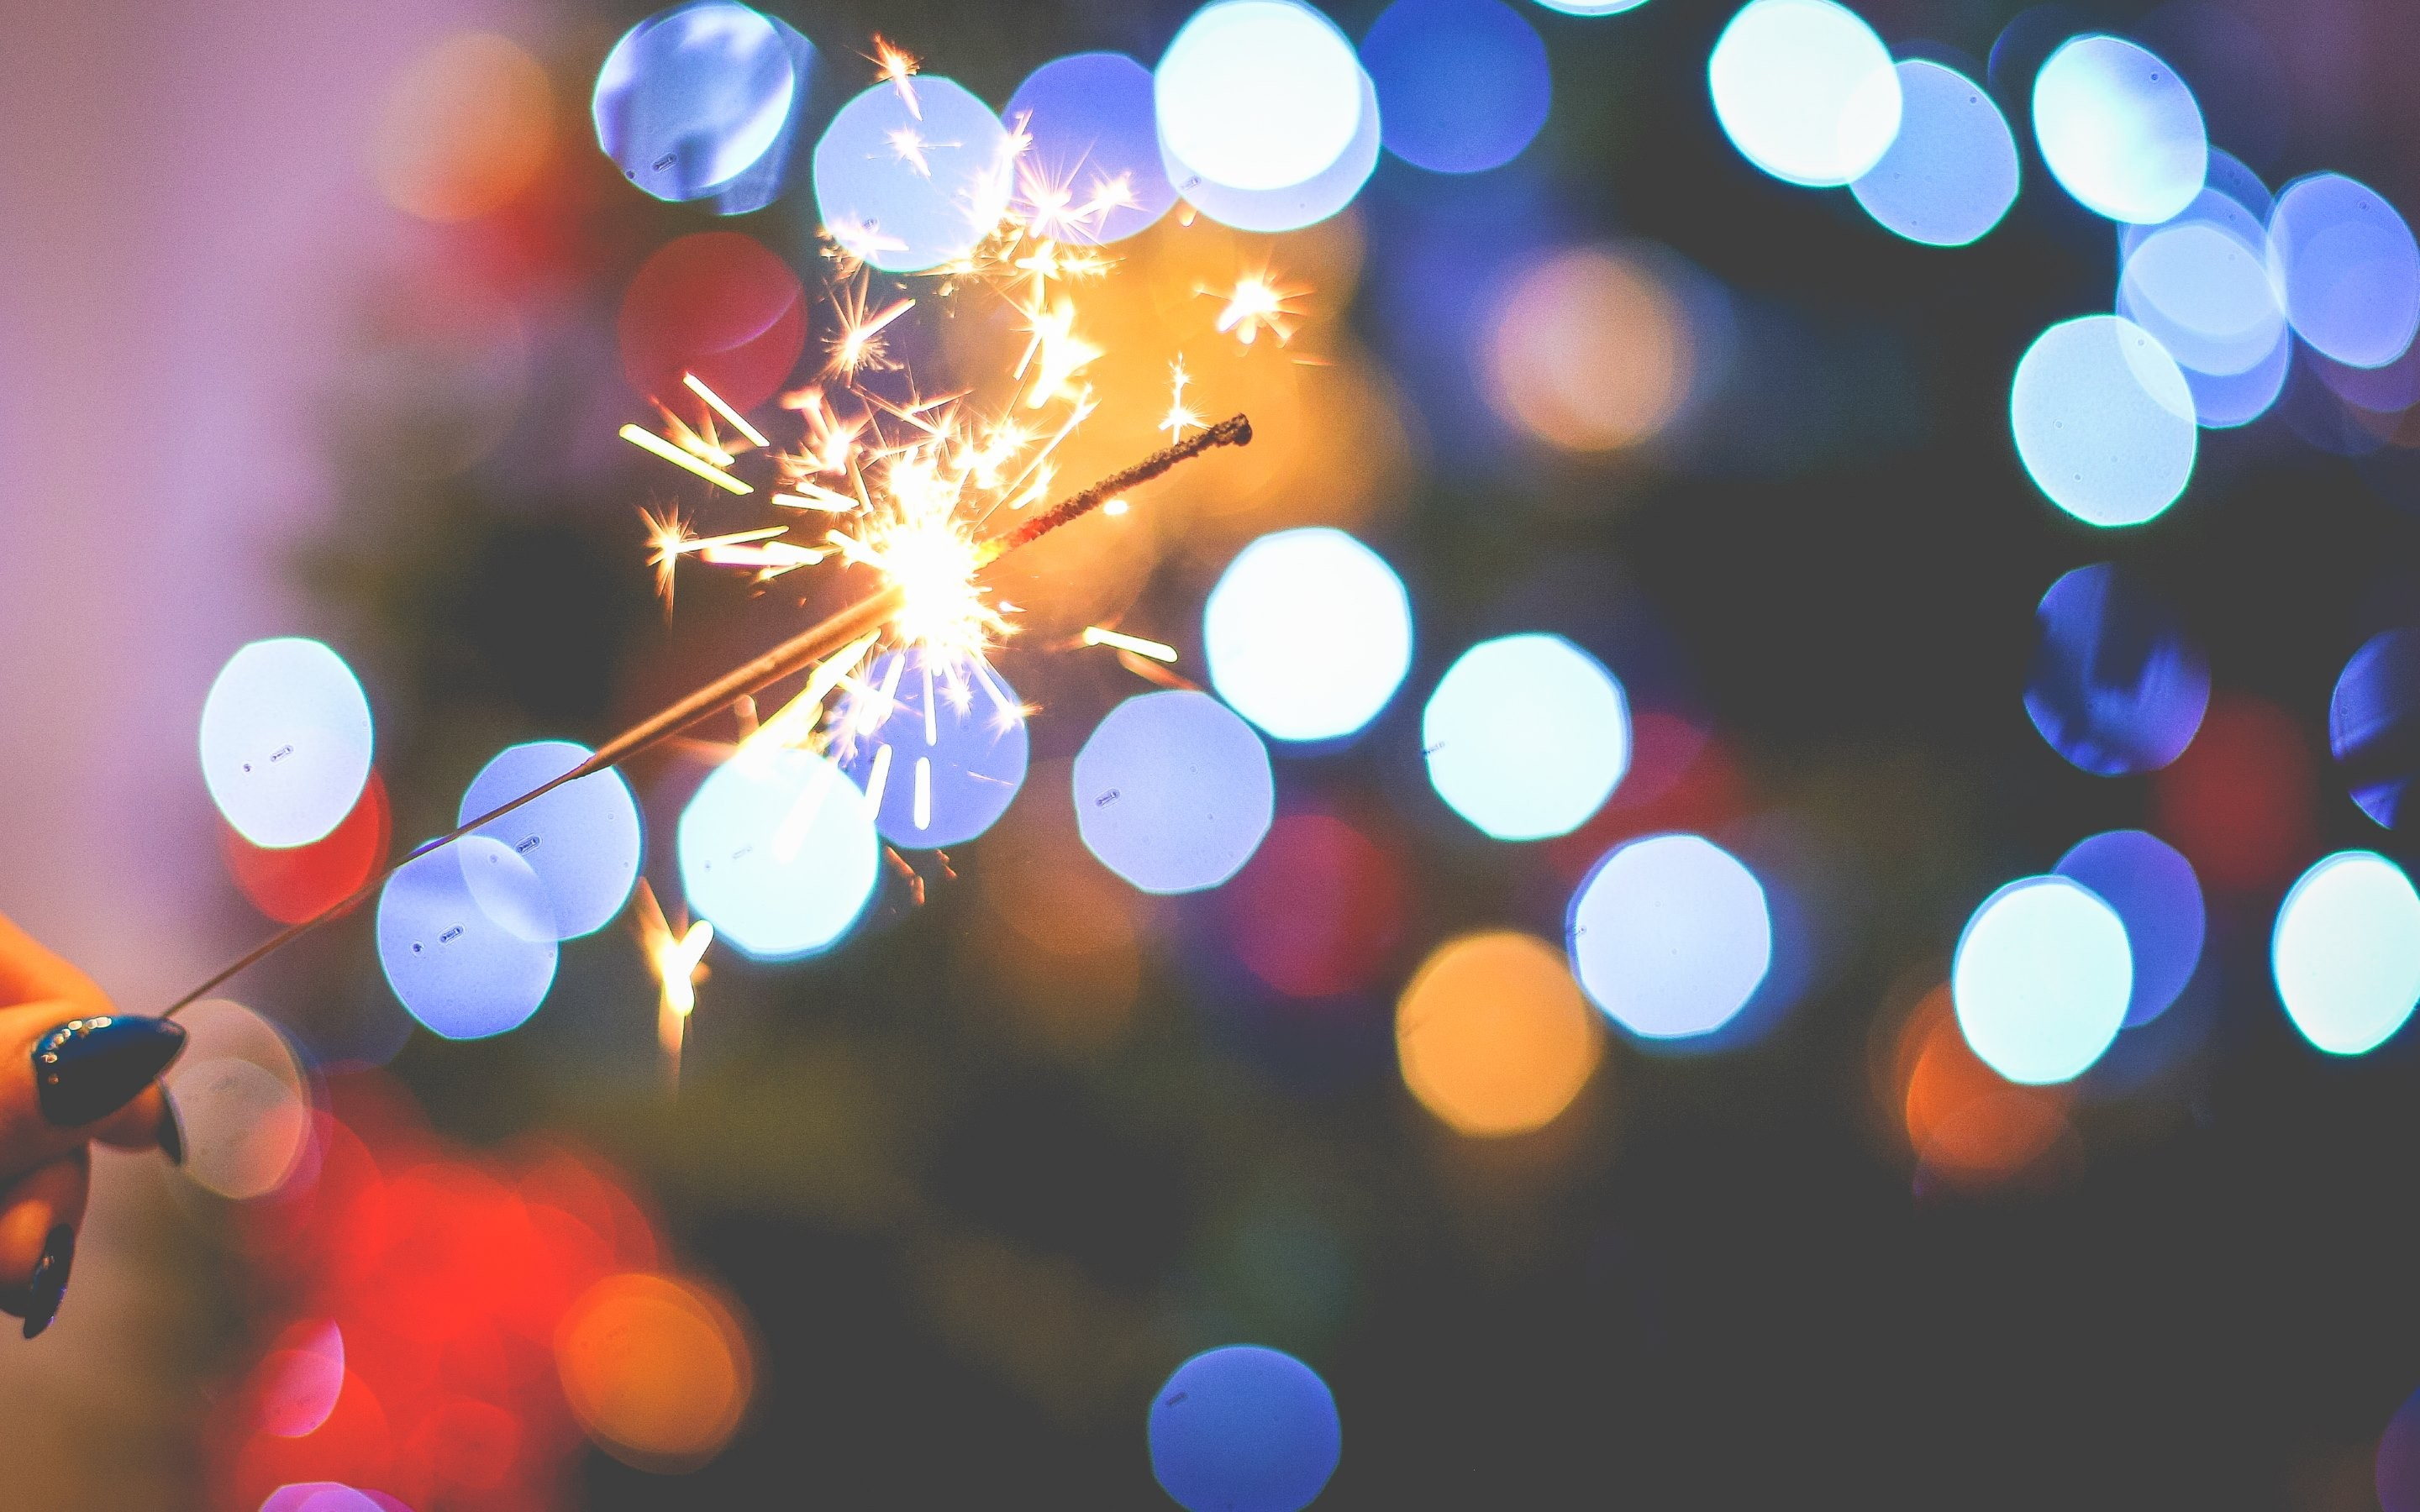 2880x1800 4k hd wallpaper sparklers in the new years eve